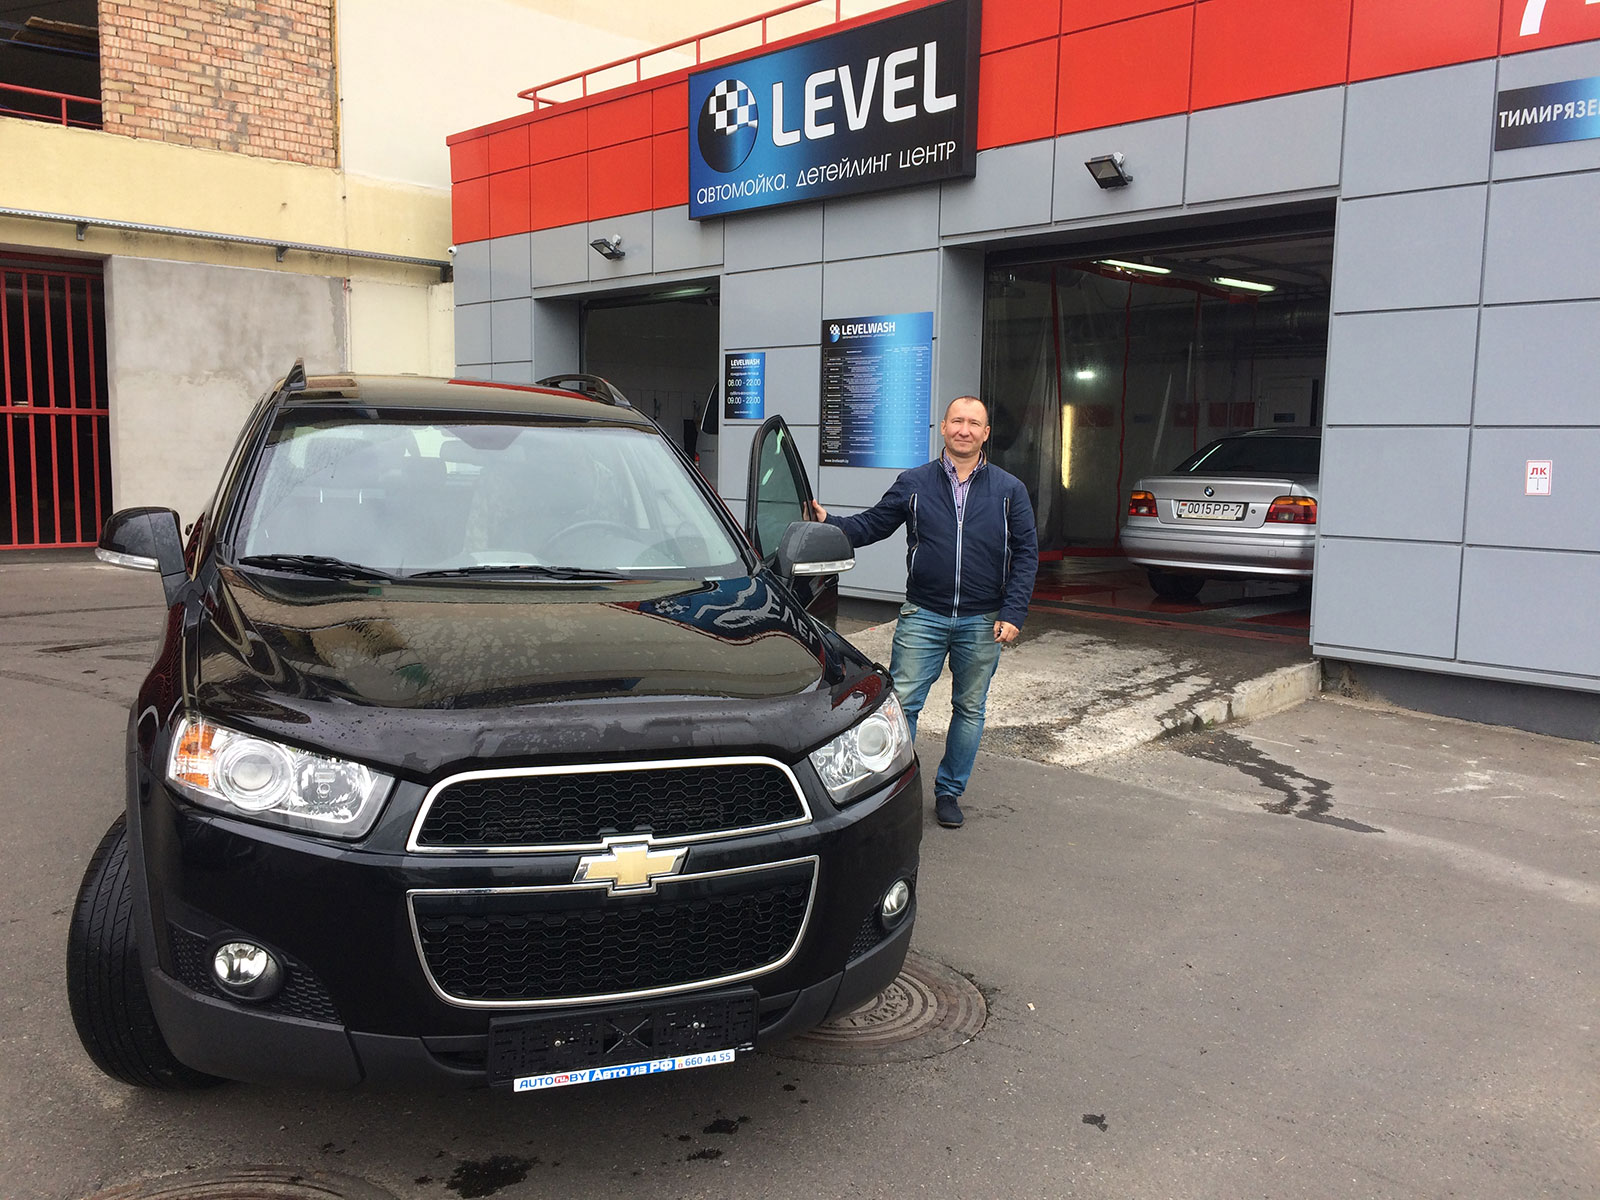 2014 Chevrolet Captive 2.2TDI